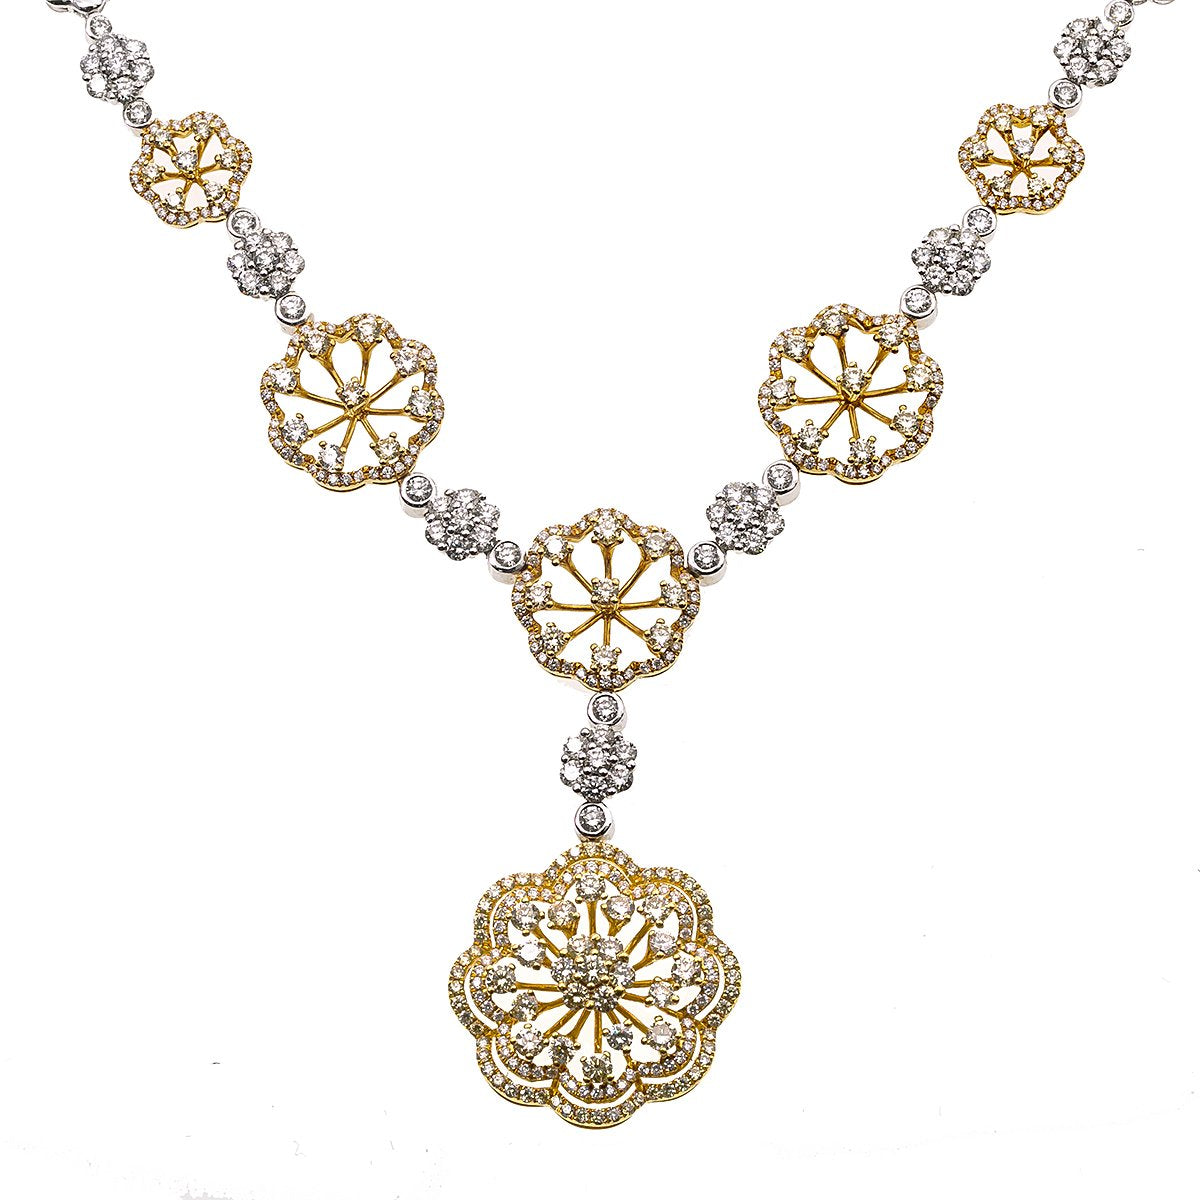 "Fancy 18K Yellow and White Gold 20"" Women's Necklace With 6.27 CT Diamonds"